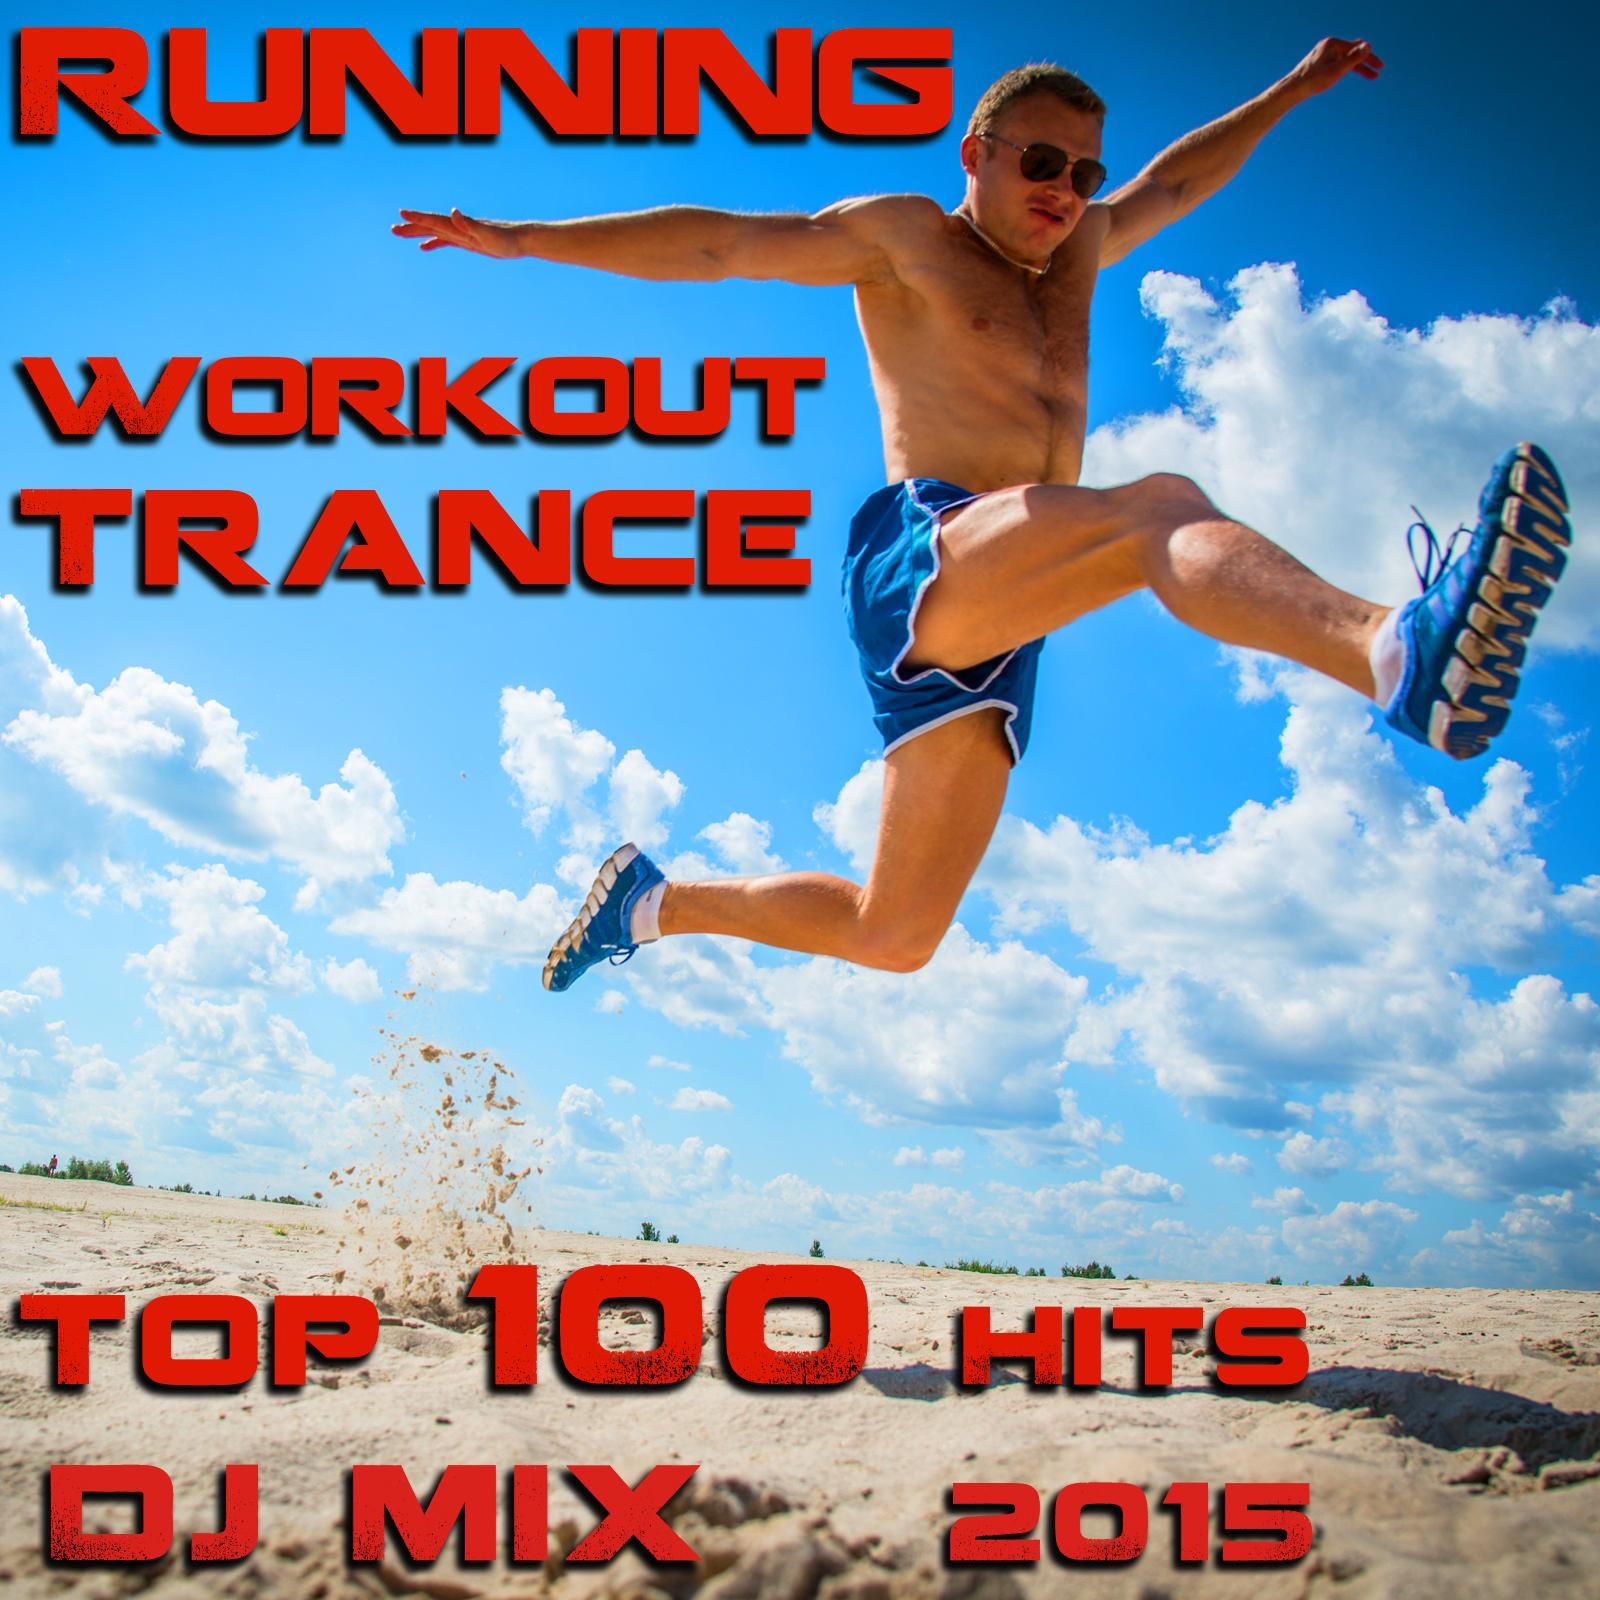 House & Trance Morning Warmup Ramp, Pt. 7 (126 BPM Running Workout DJ Mix)